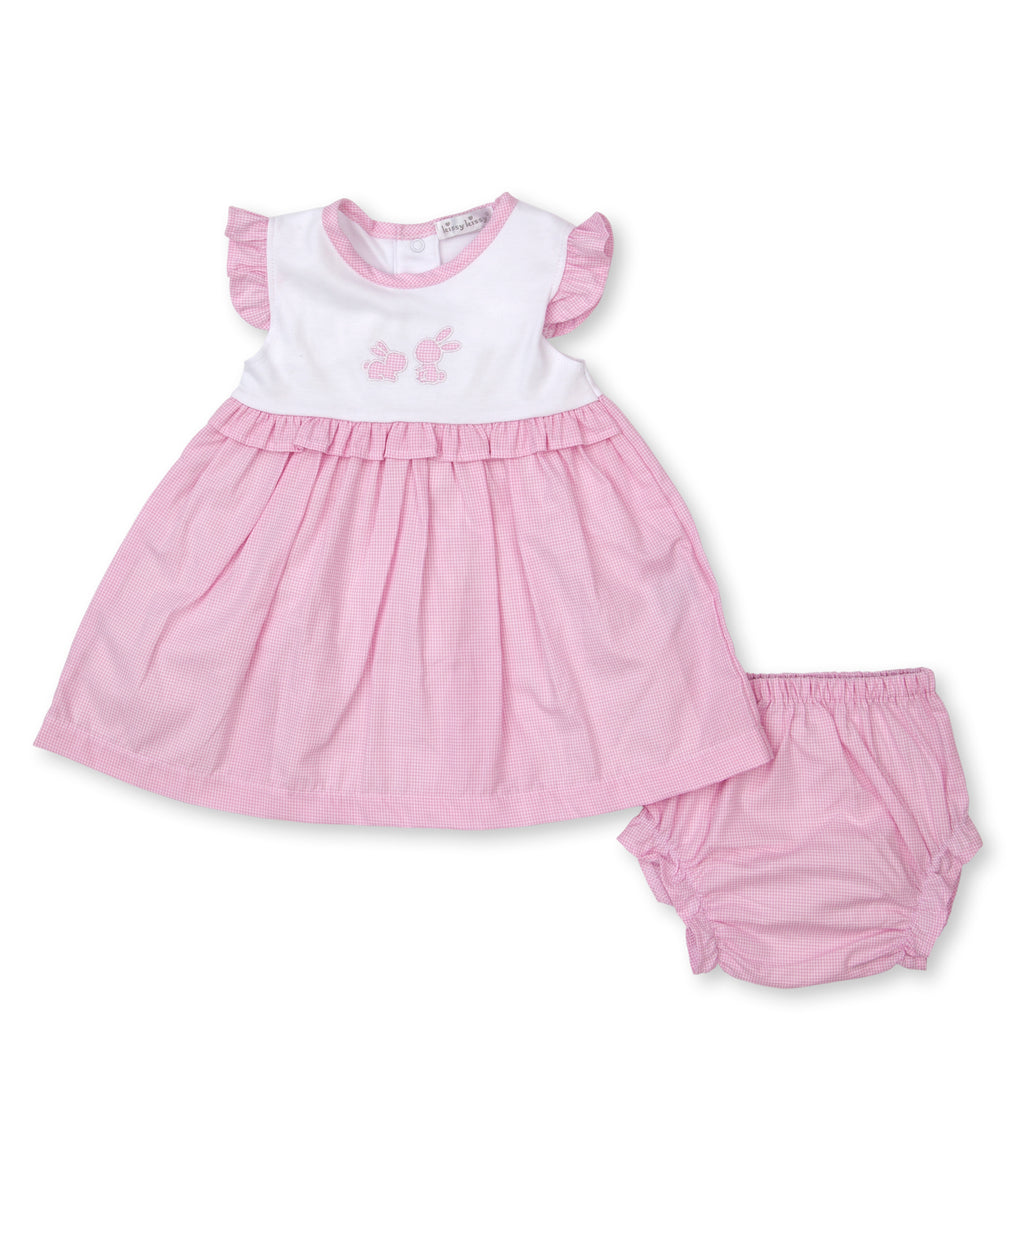 Pique Bunny Fam Dress Set